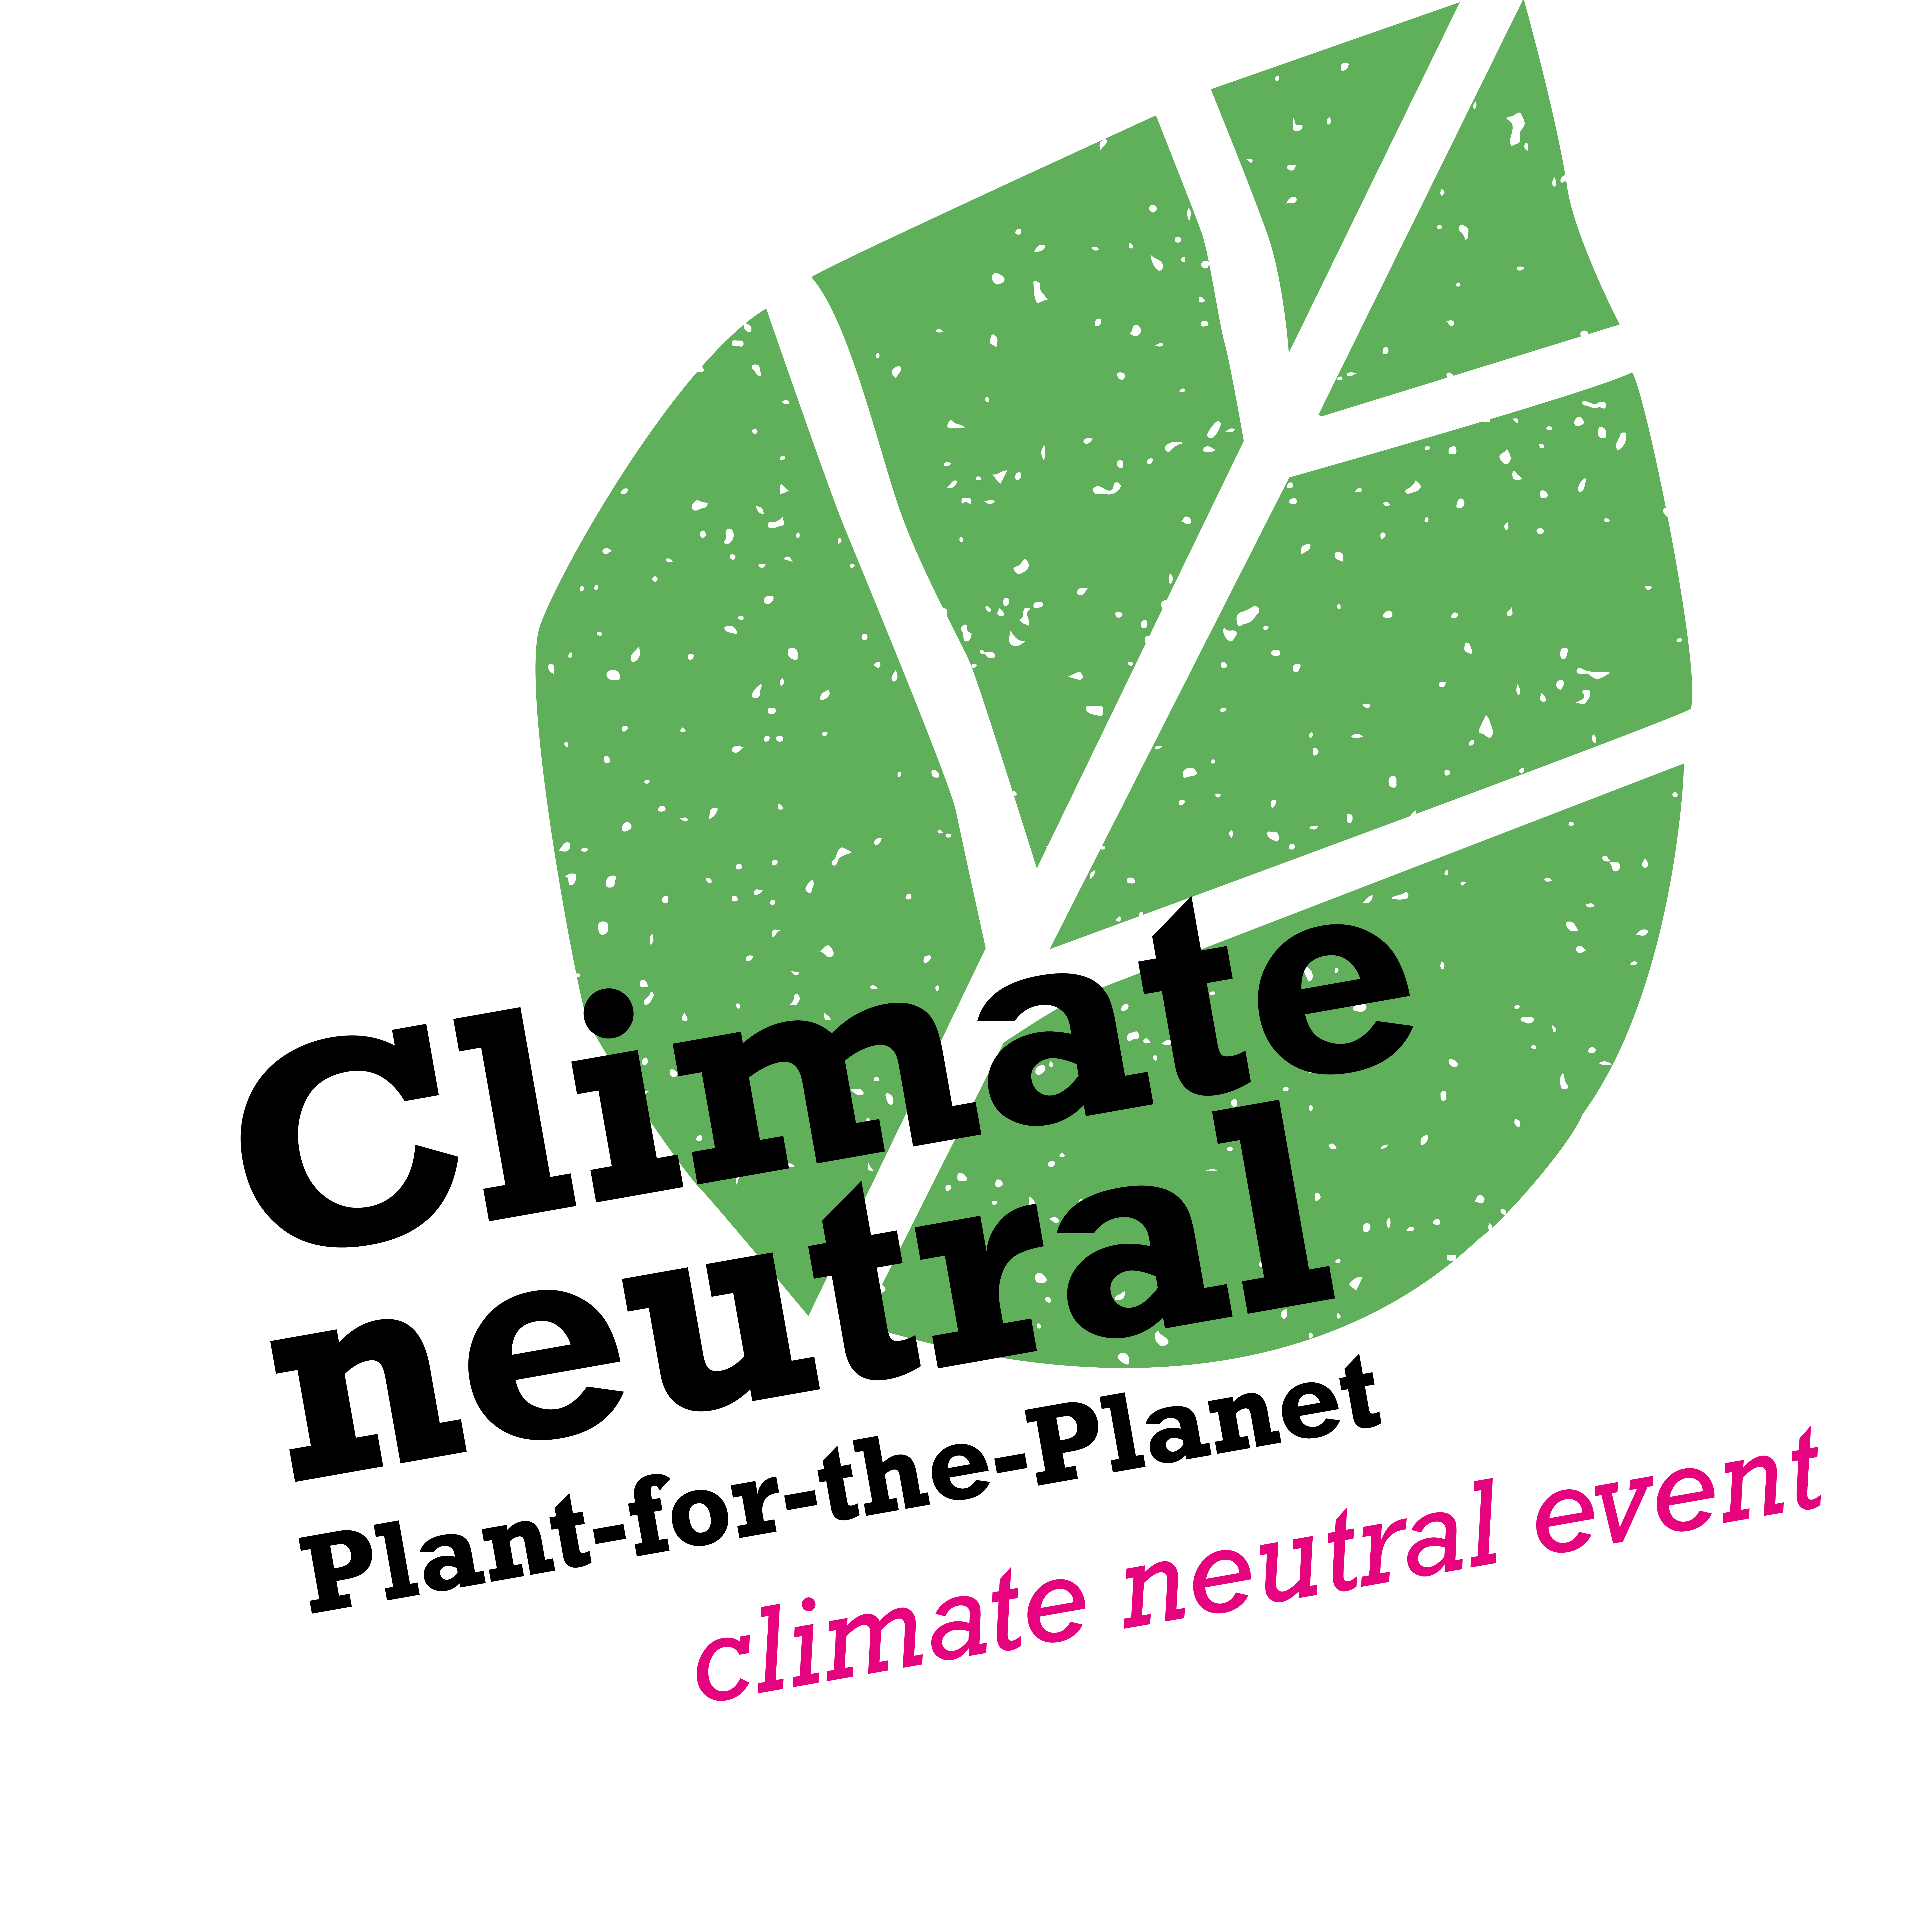 We are a climate neutral event